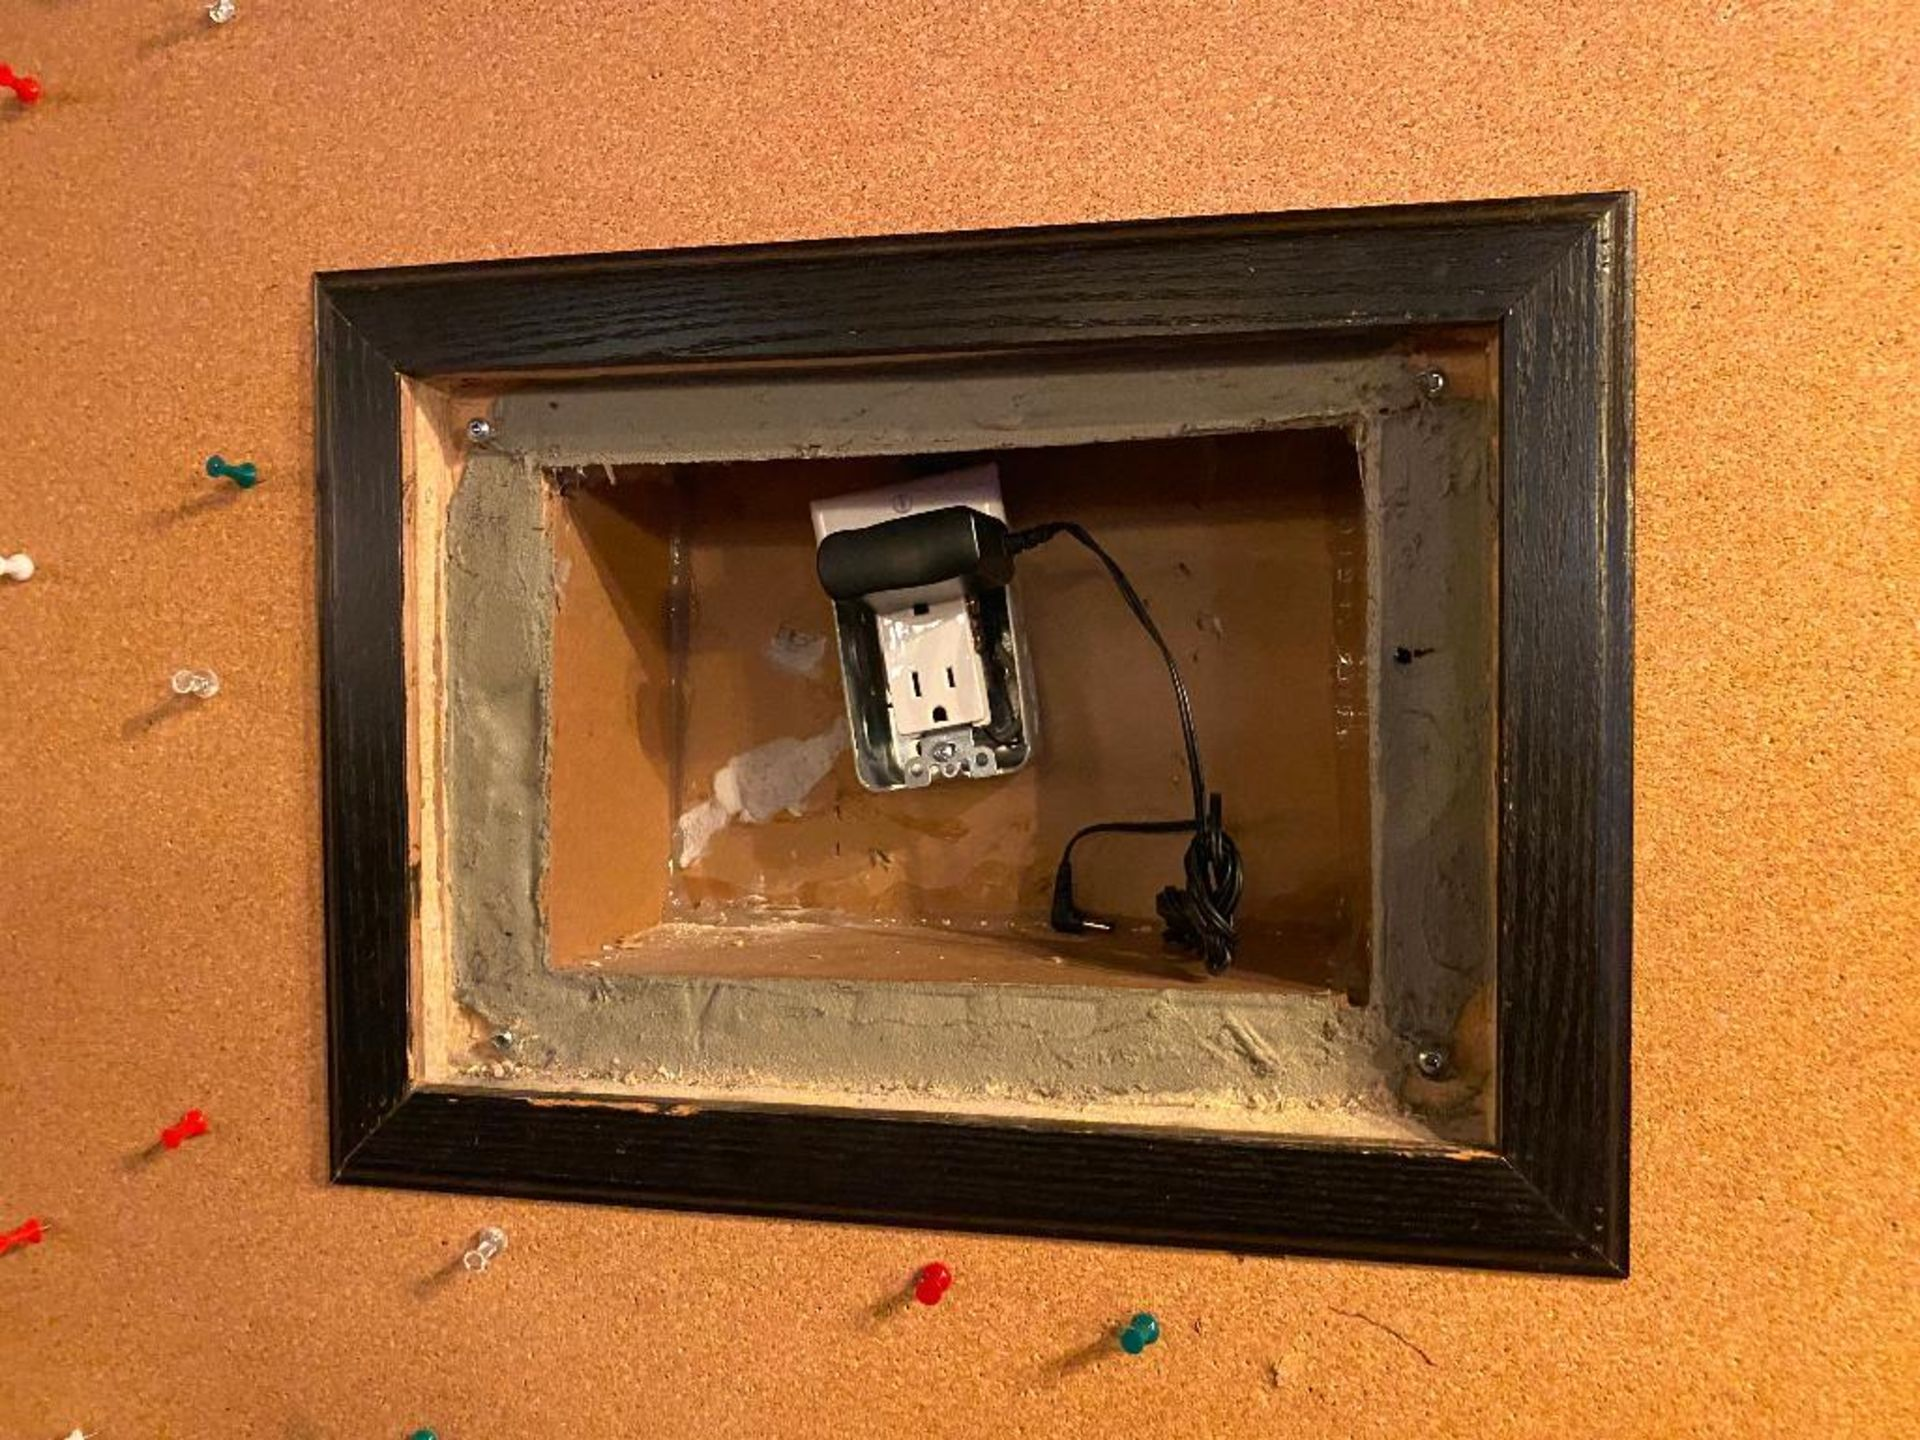 REASONS TO CELEBRATE BOARD WITH DIGITAL PHOTO FRAME - NOTE: REQUIRES REMOVAL FROM WALL, PLEASE INSPE - Image 2 of 3